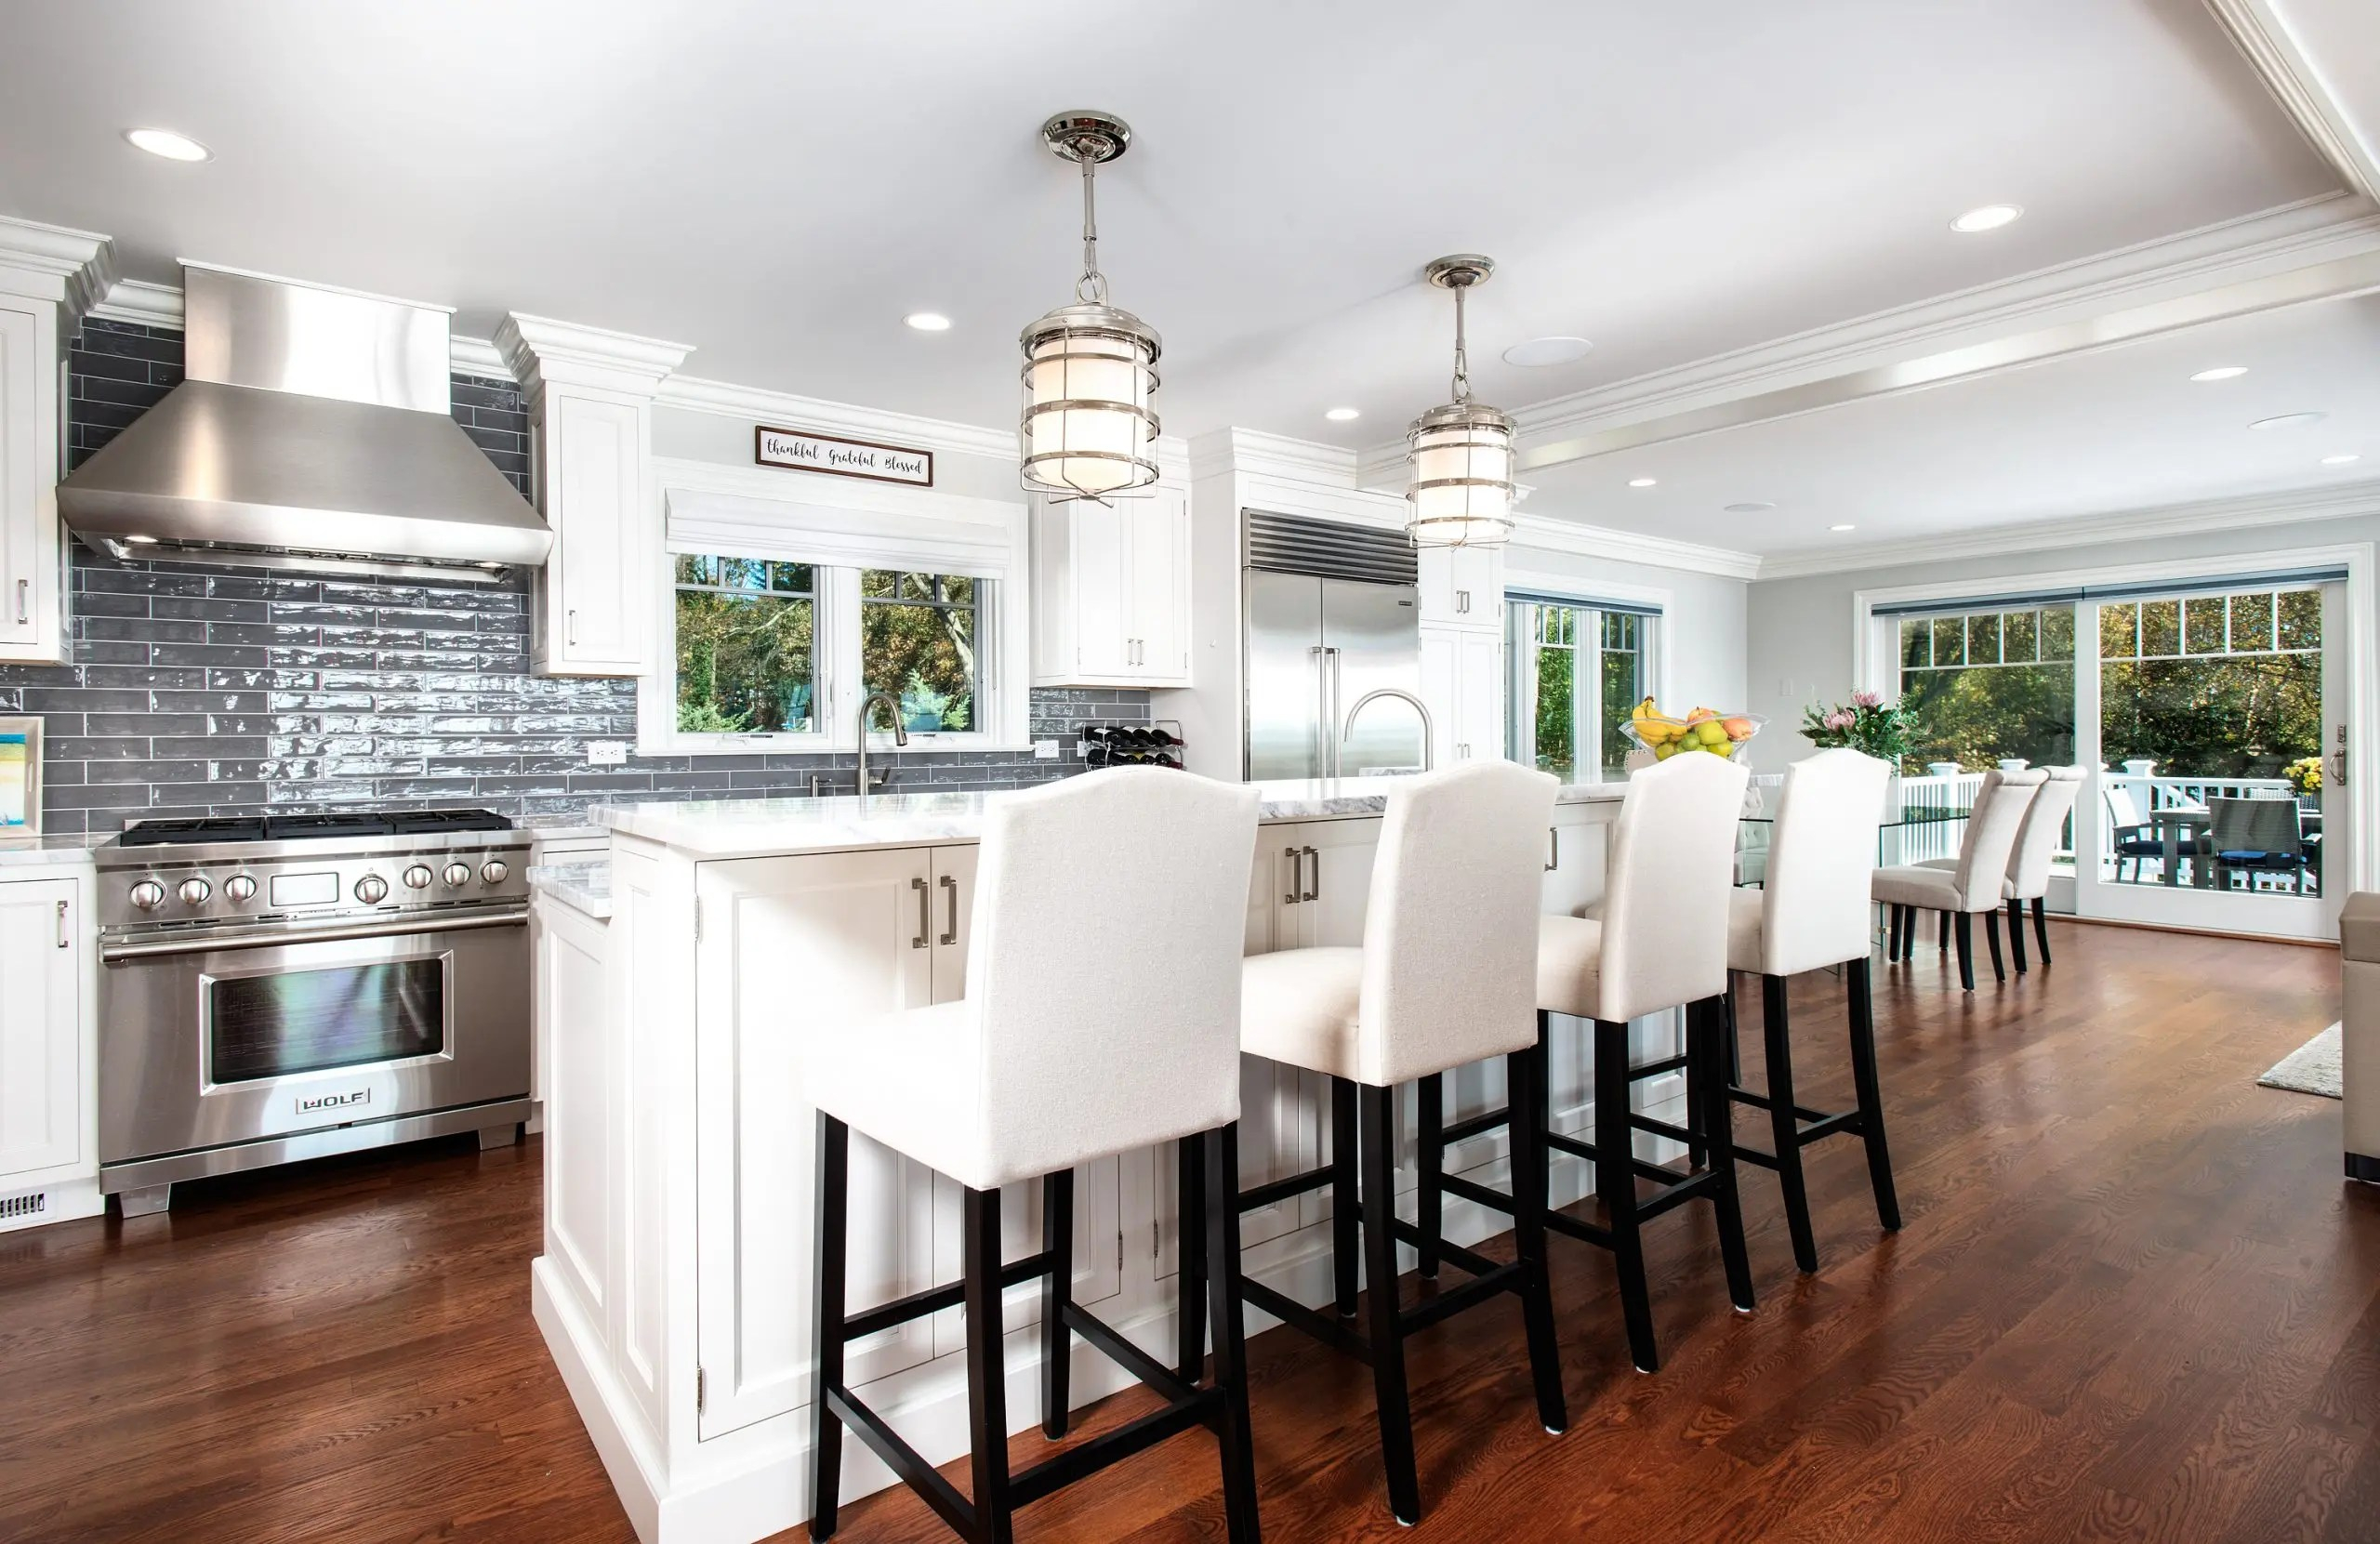 10- Gourmet Kitchen with Fabulous Island Perfect for Entertaining